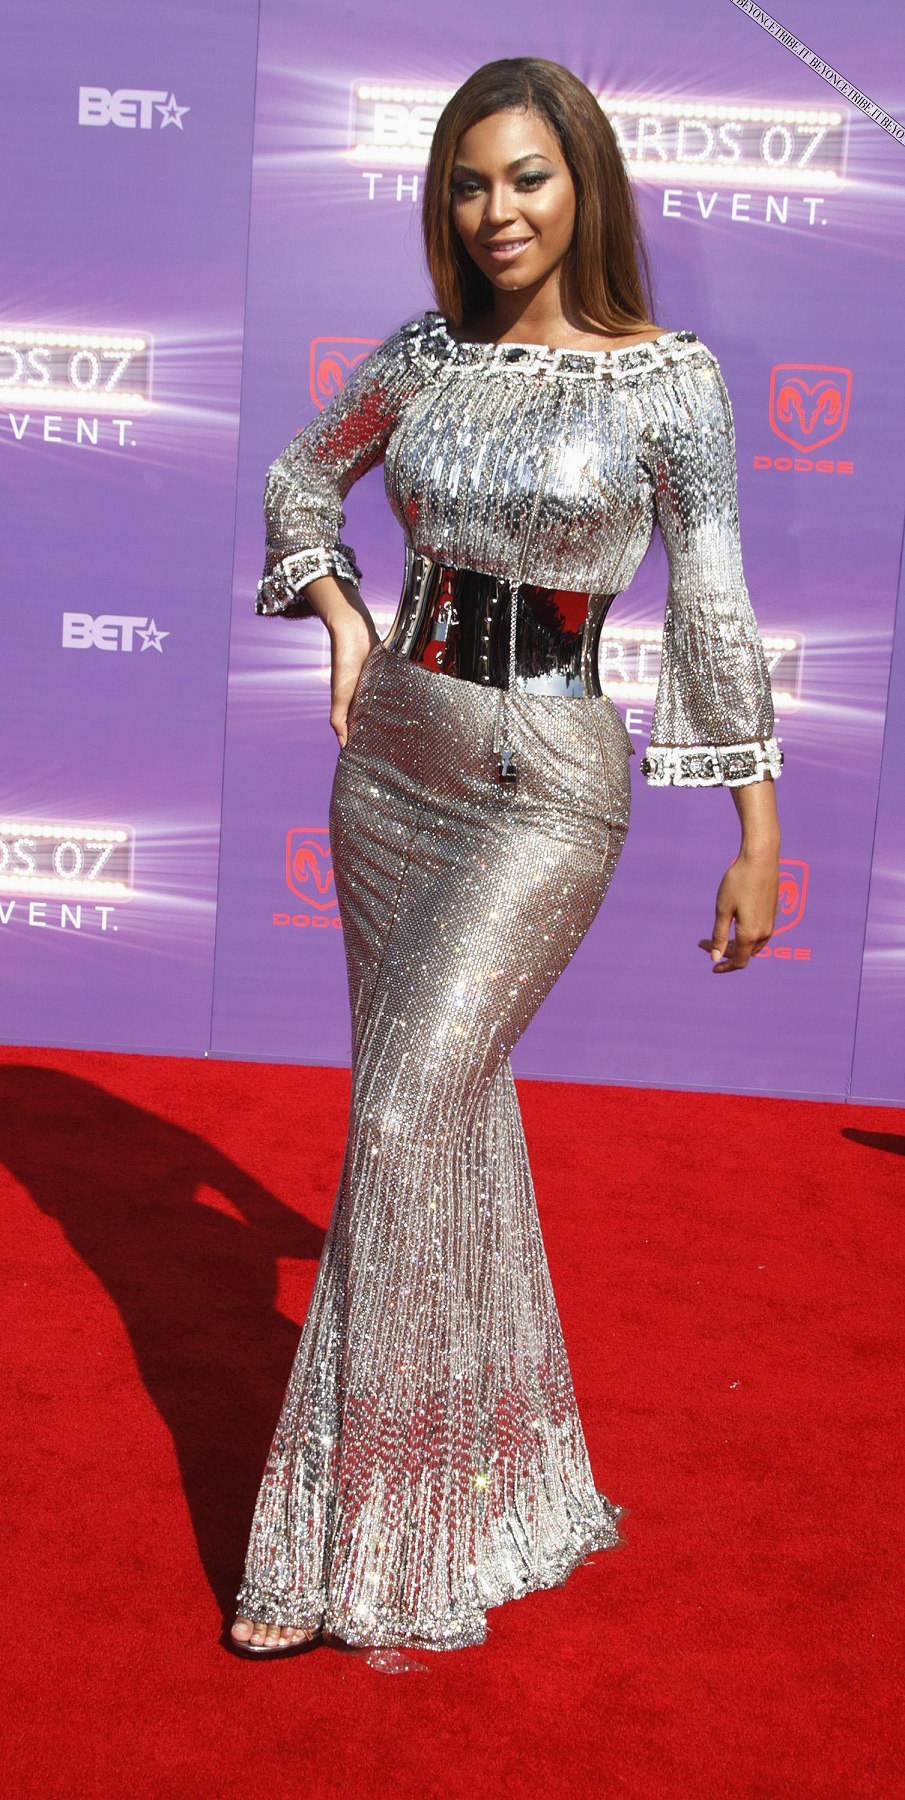 Best bling dresses online 2021 Beyoncé Wearing A Silver Long Bell Sleeves Silver Embellished Gown with Silver Metallic Waist Belt